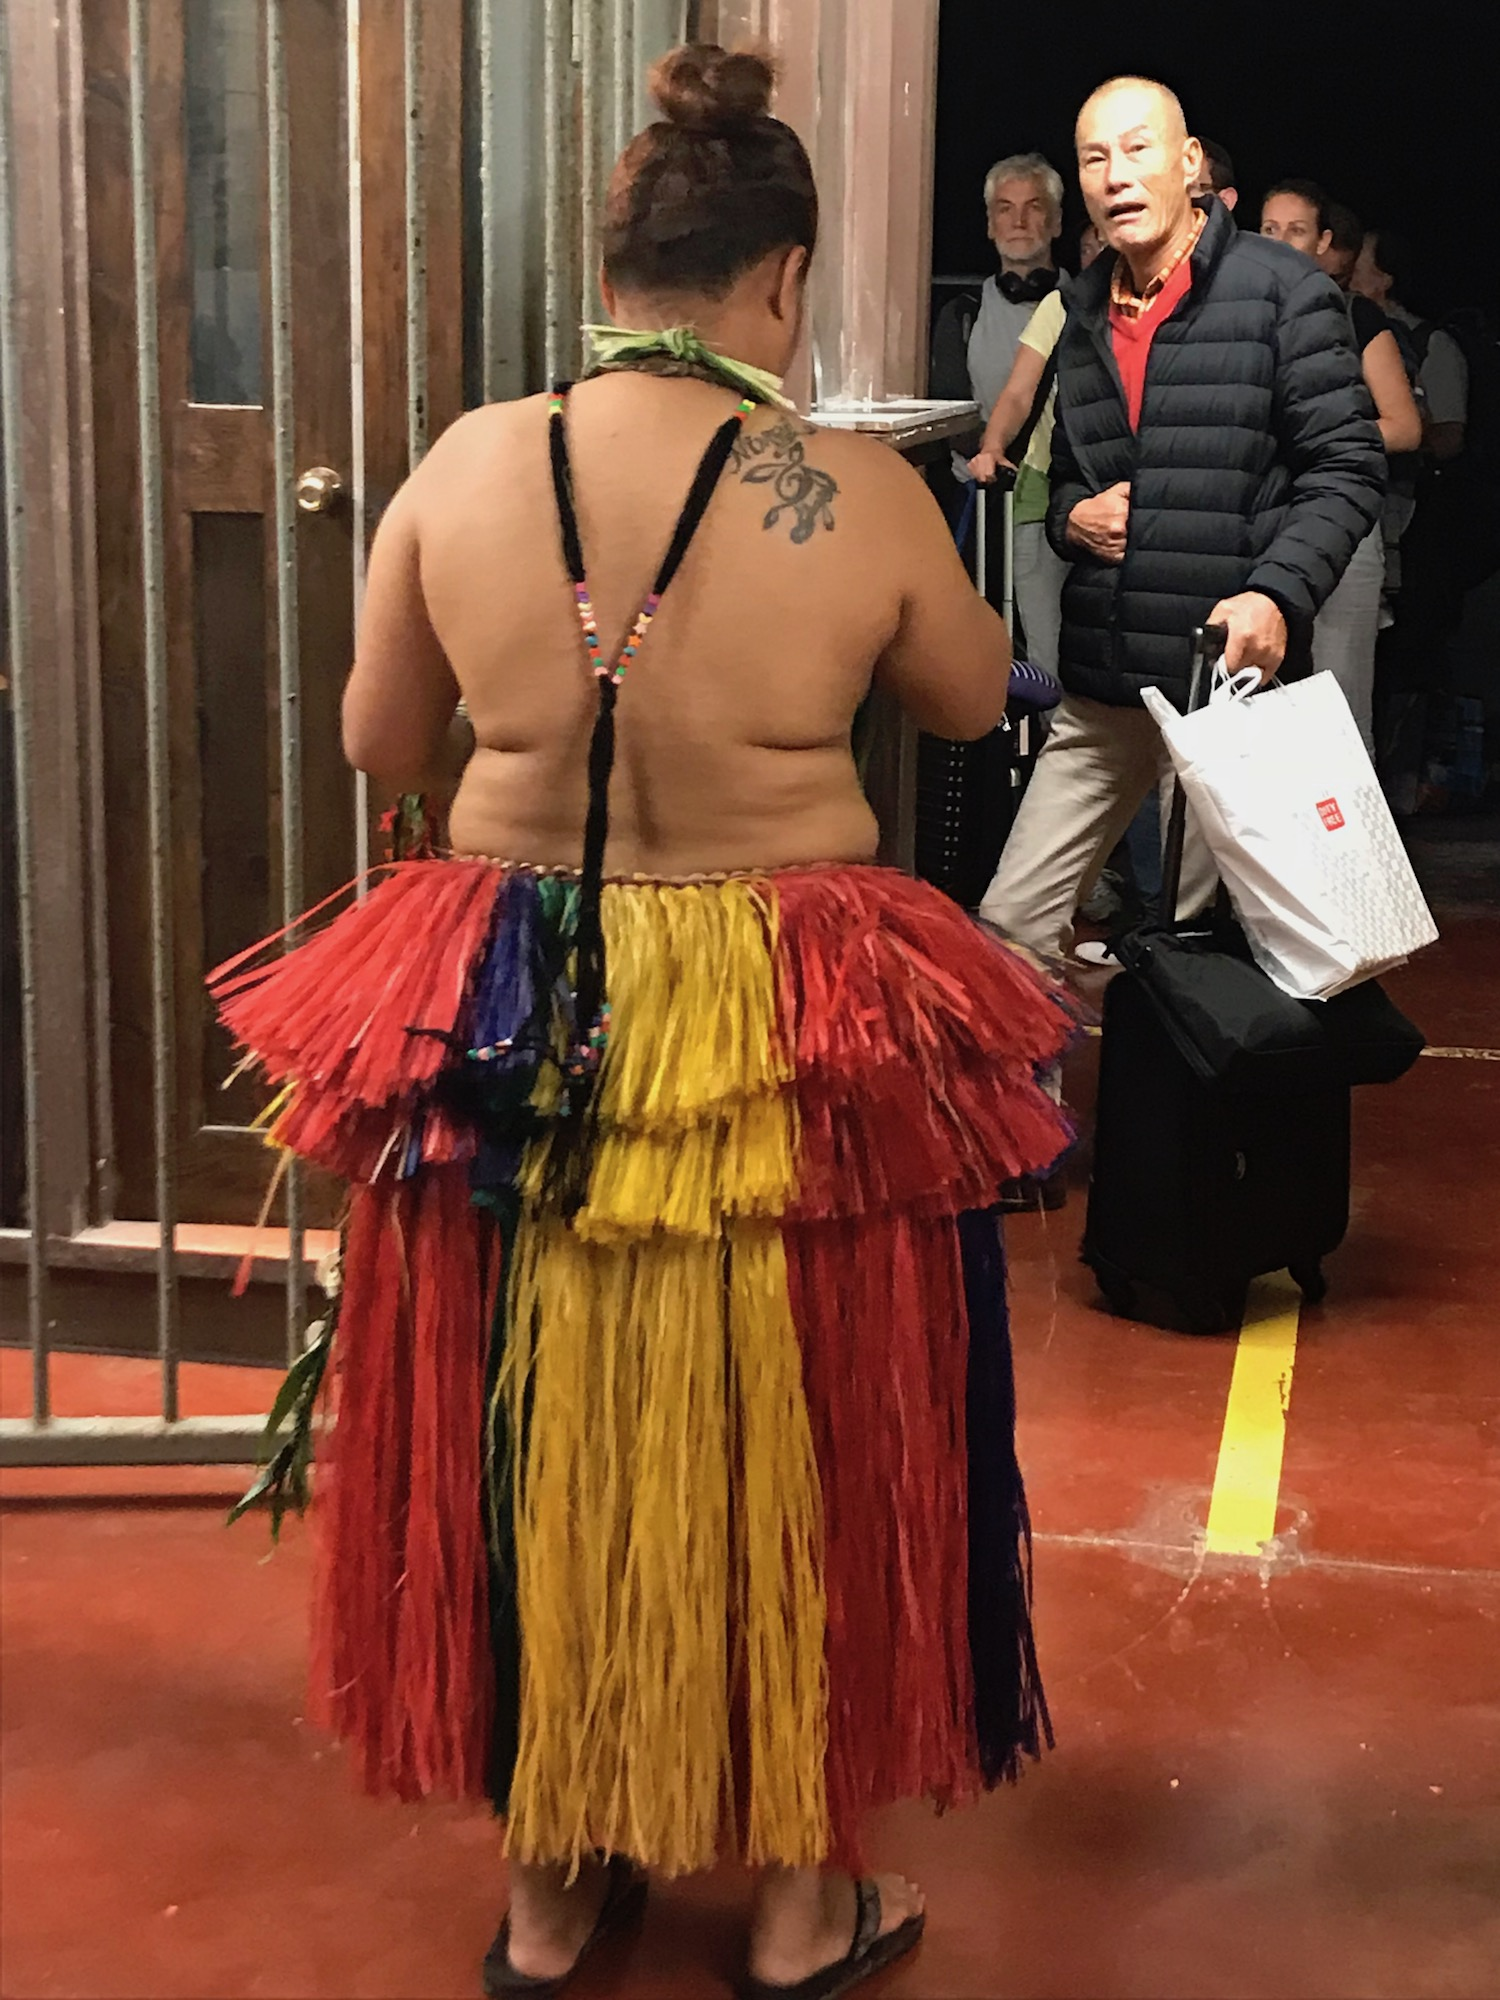 Woman in grass skirt greets visitors at Yap airport